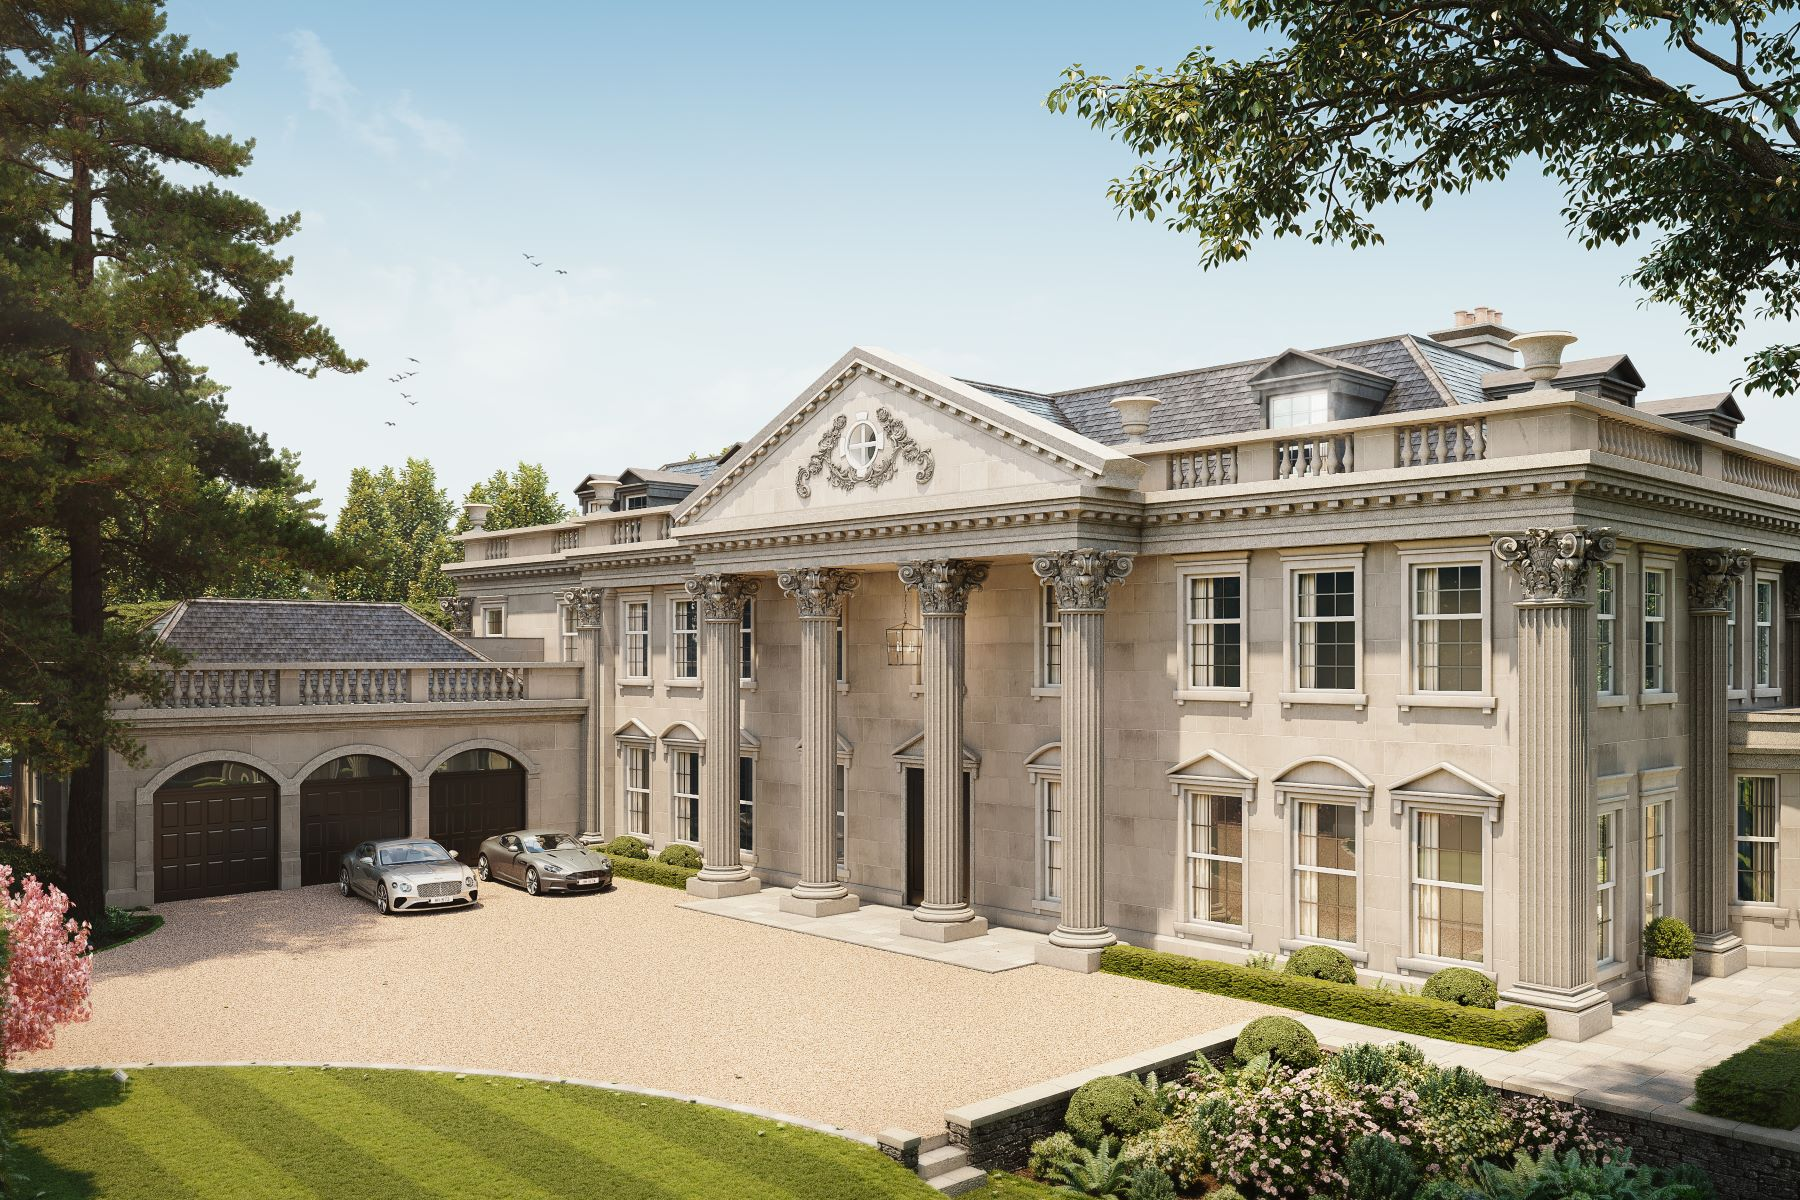 Single Family Homes for Sale at Hampton Hall, Queens Drive Oxshott, England KT22 0PB United Kingdom